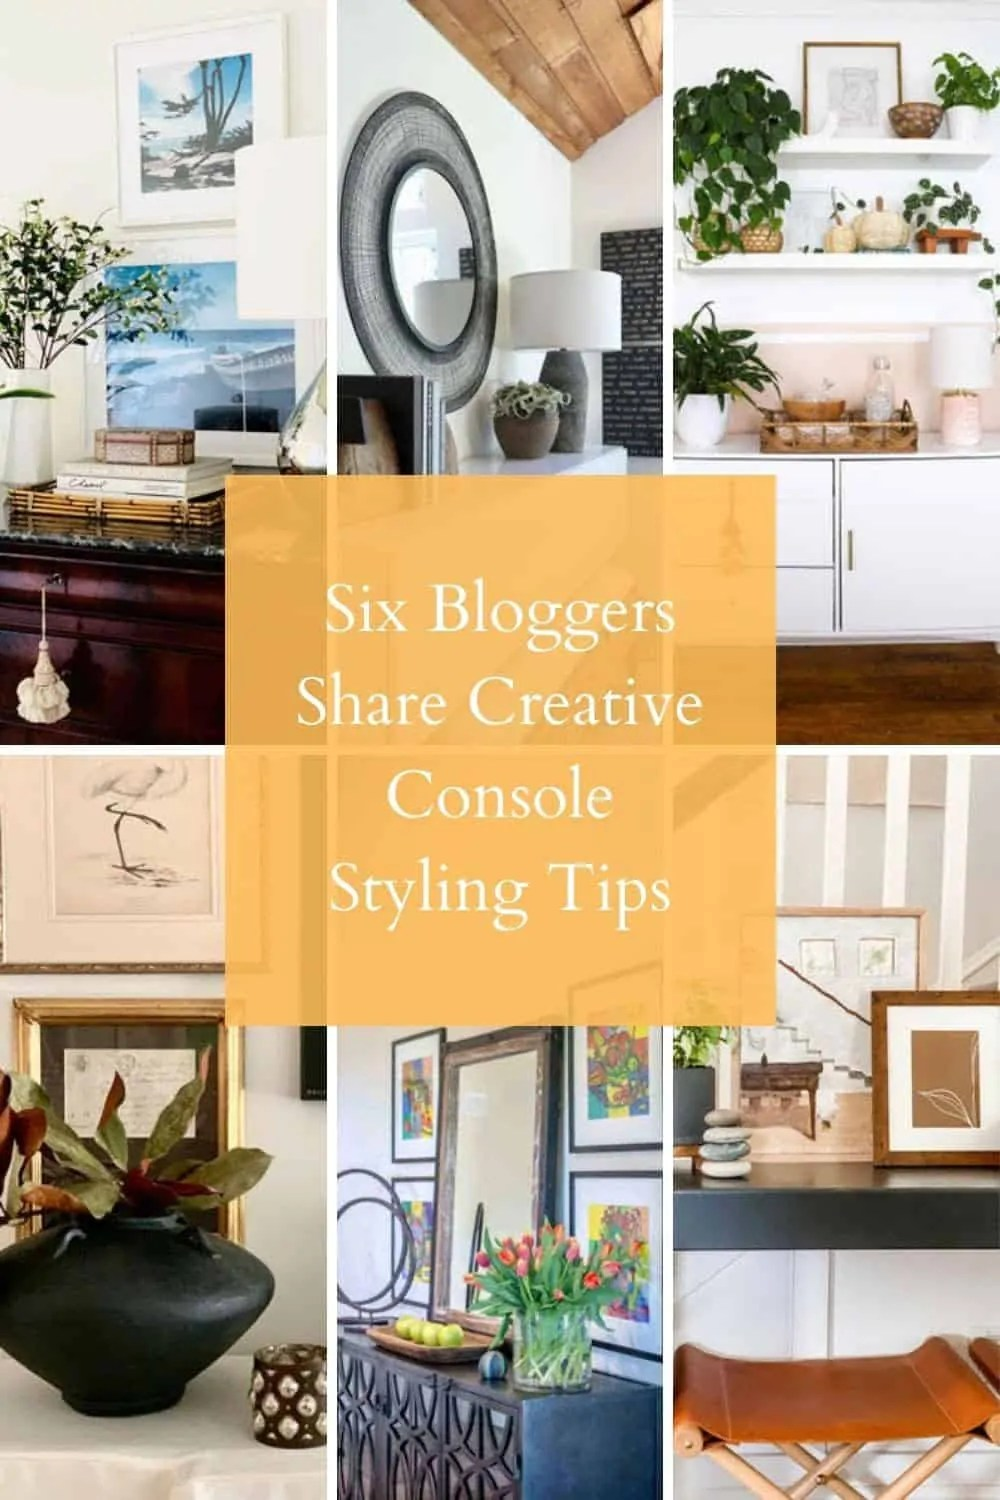 Six Bloggers' styling tips